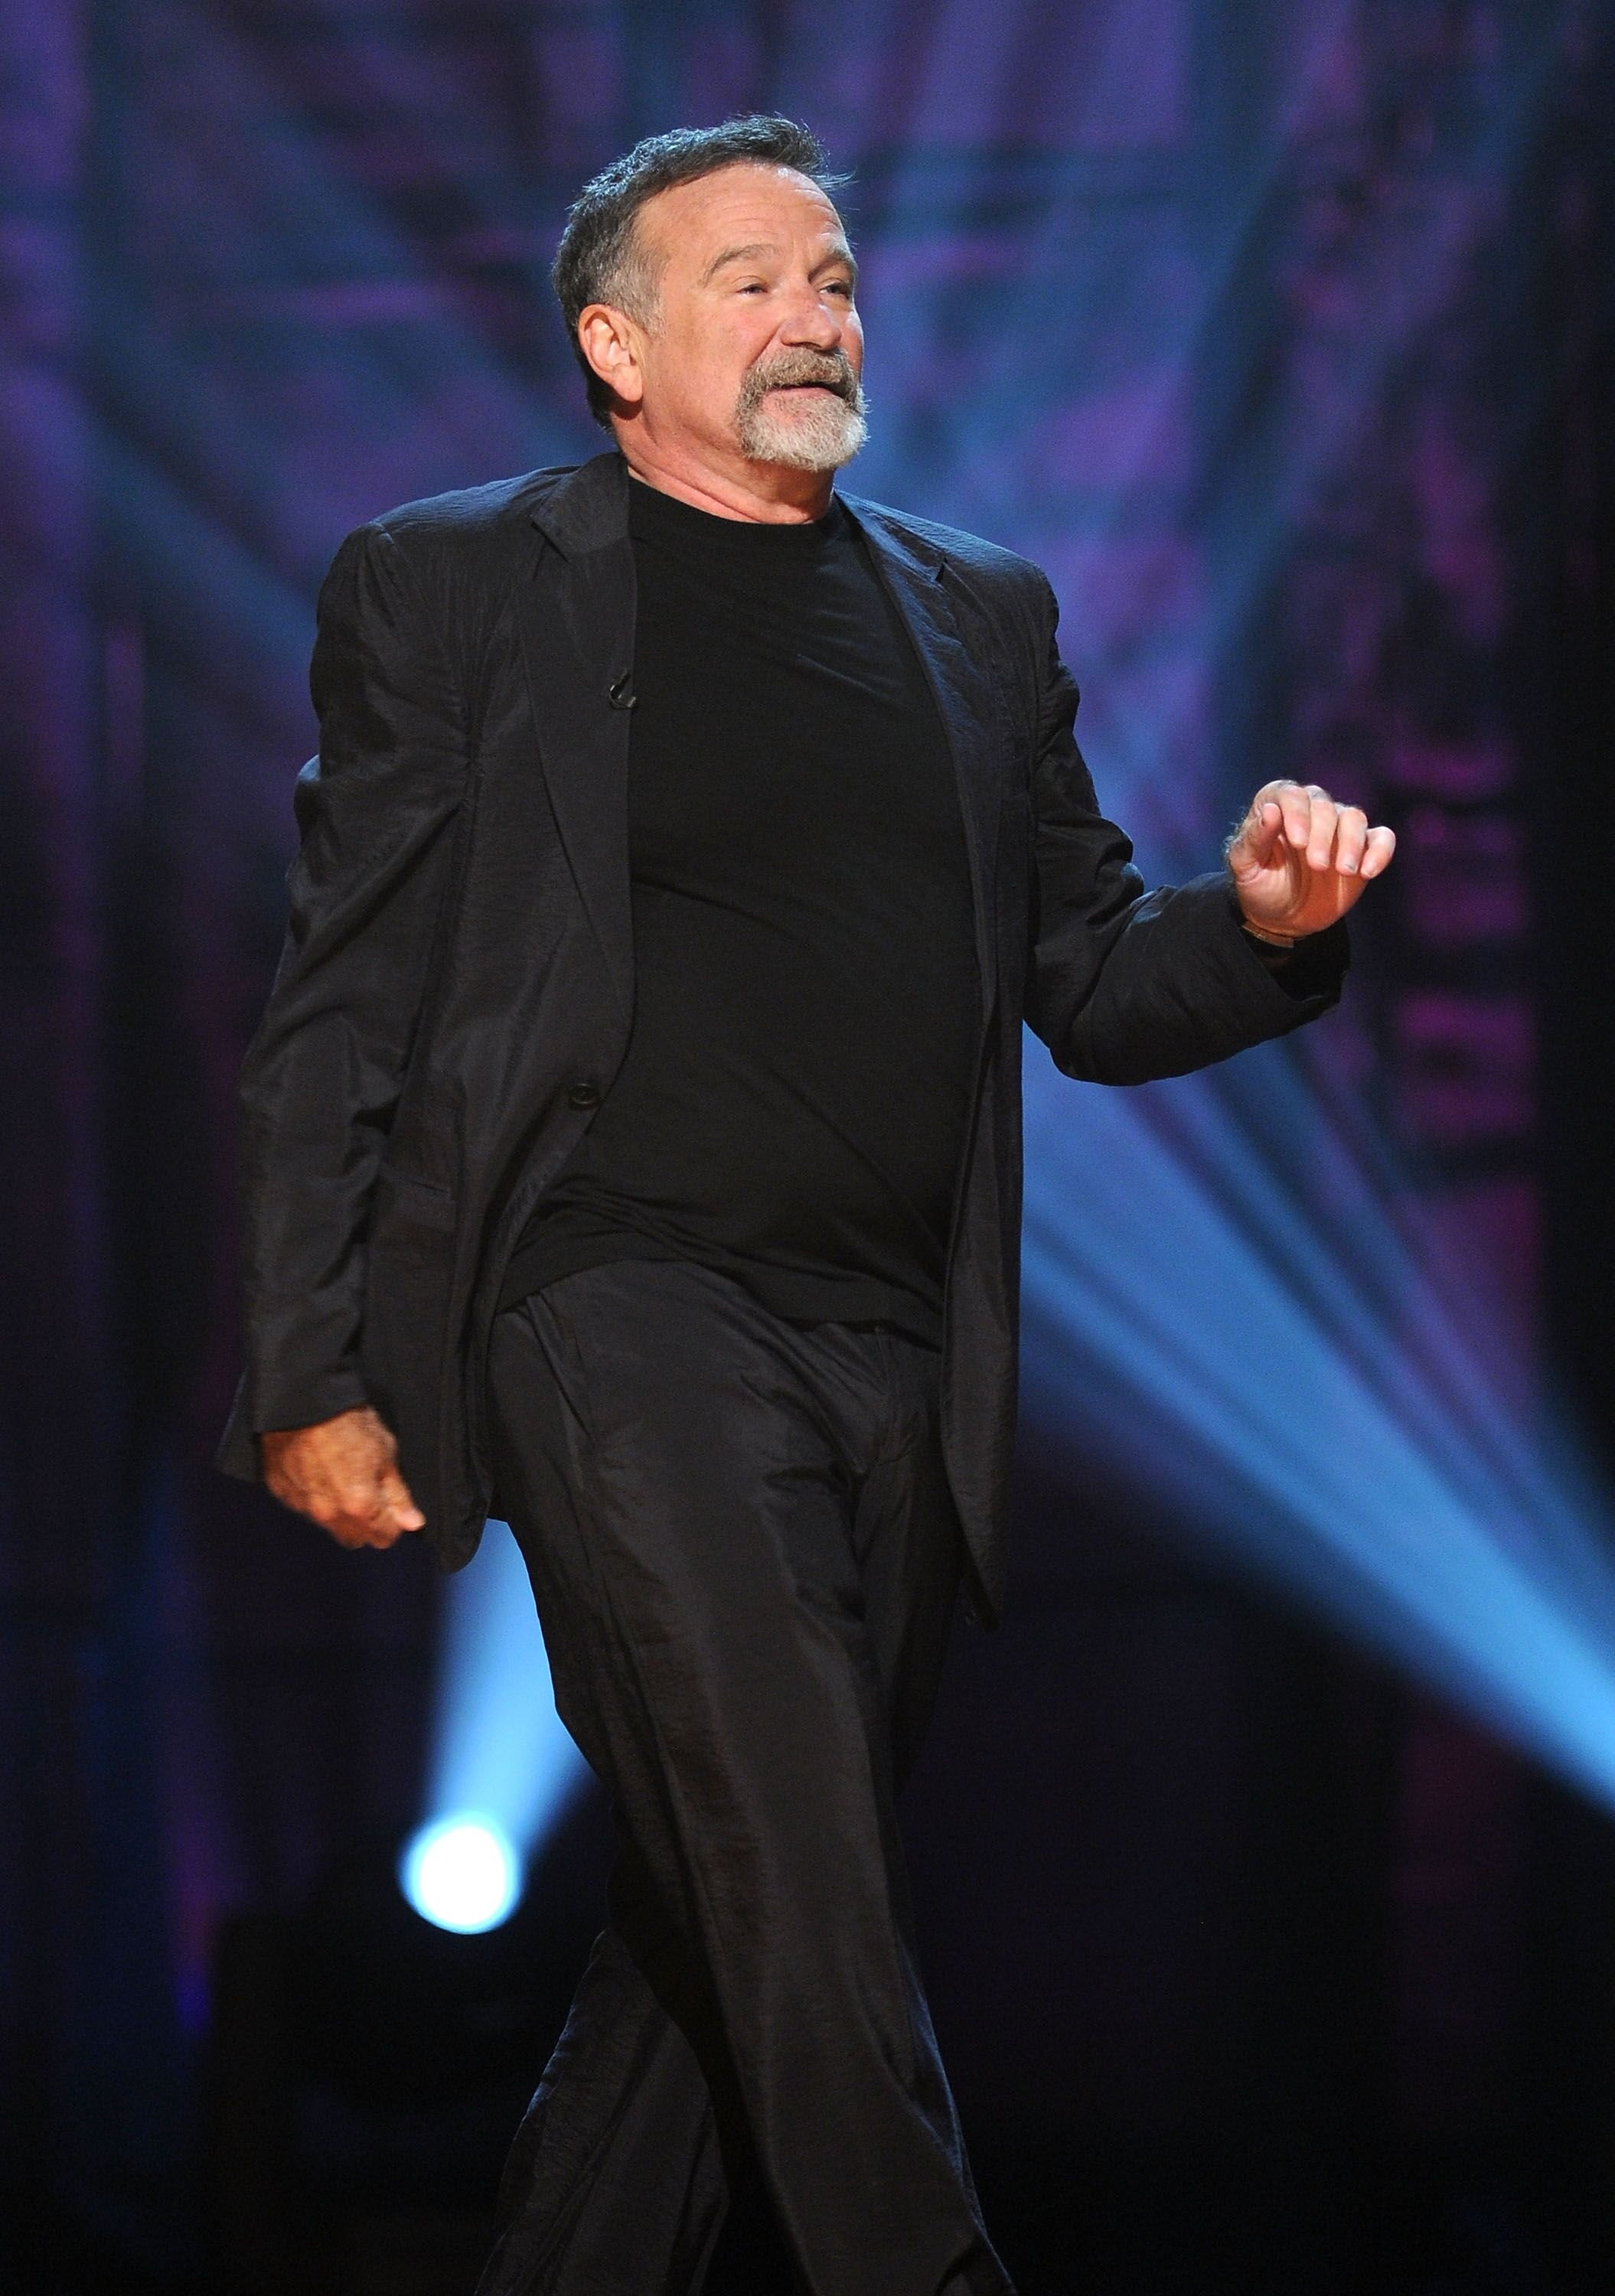 Robin Williams speaks onstage at Comedy Central's Night Of Too Many Stars: An Overbooked Concert For Autism Education. | Source: Getty Images